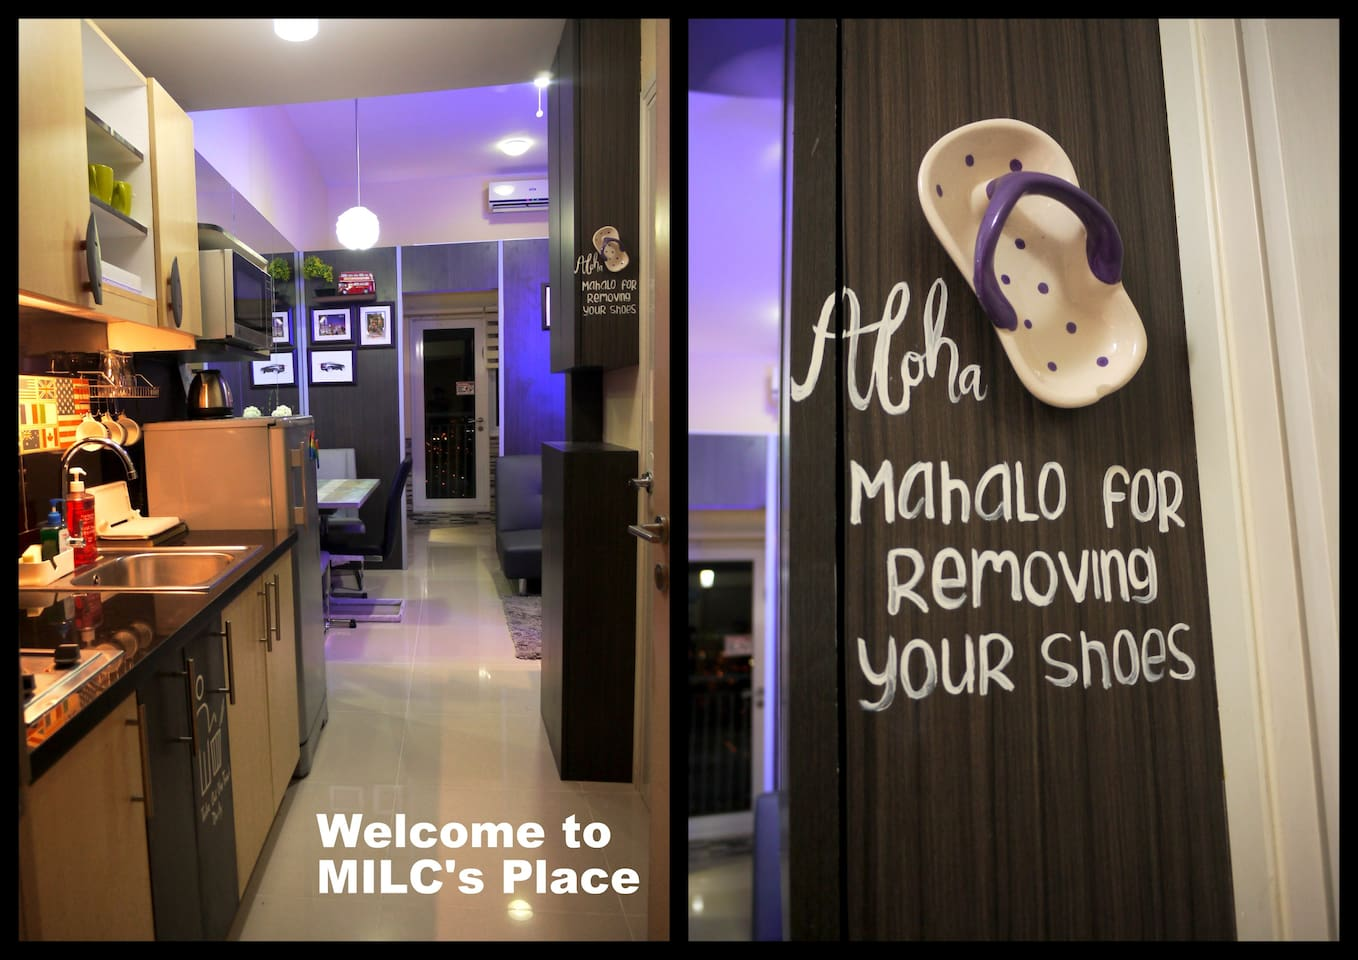 Welcome to the newly refurbished MILC's Place